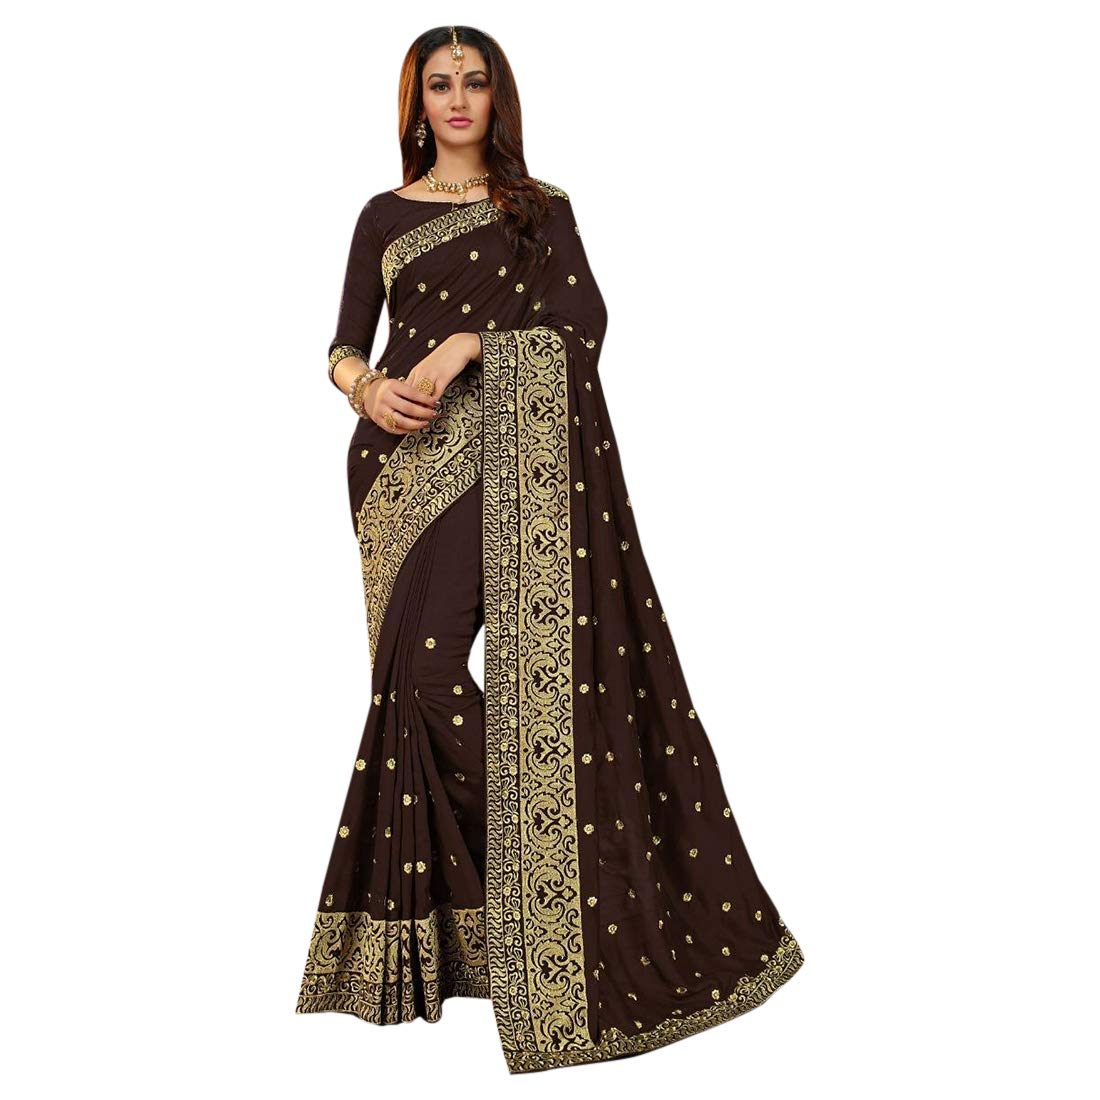 Designer Collection Silk Saree With Blouse Indian Ethnic Party Wear Sari 7355